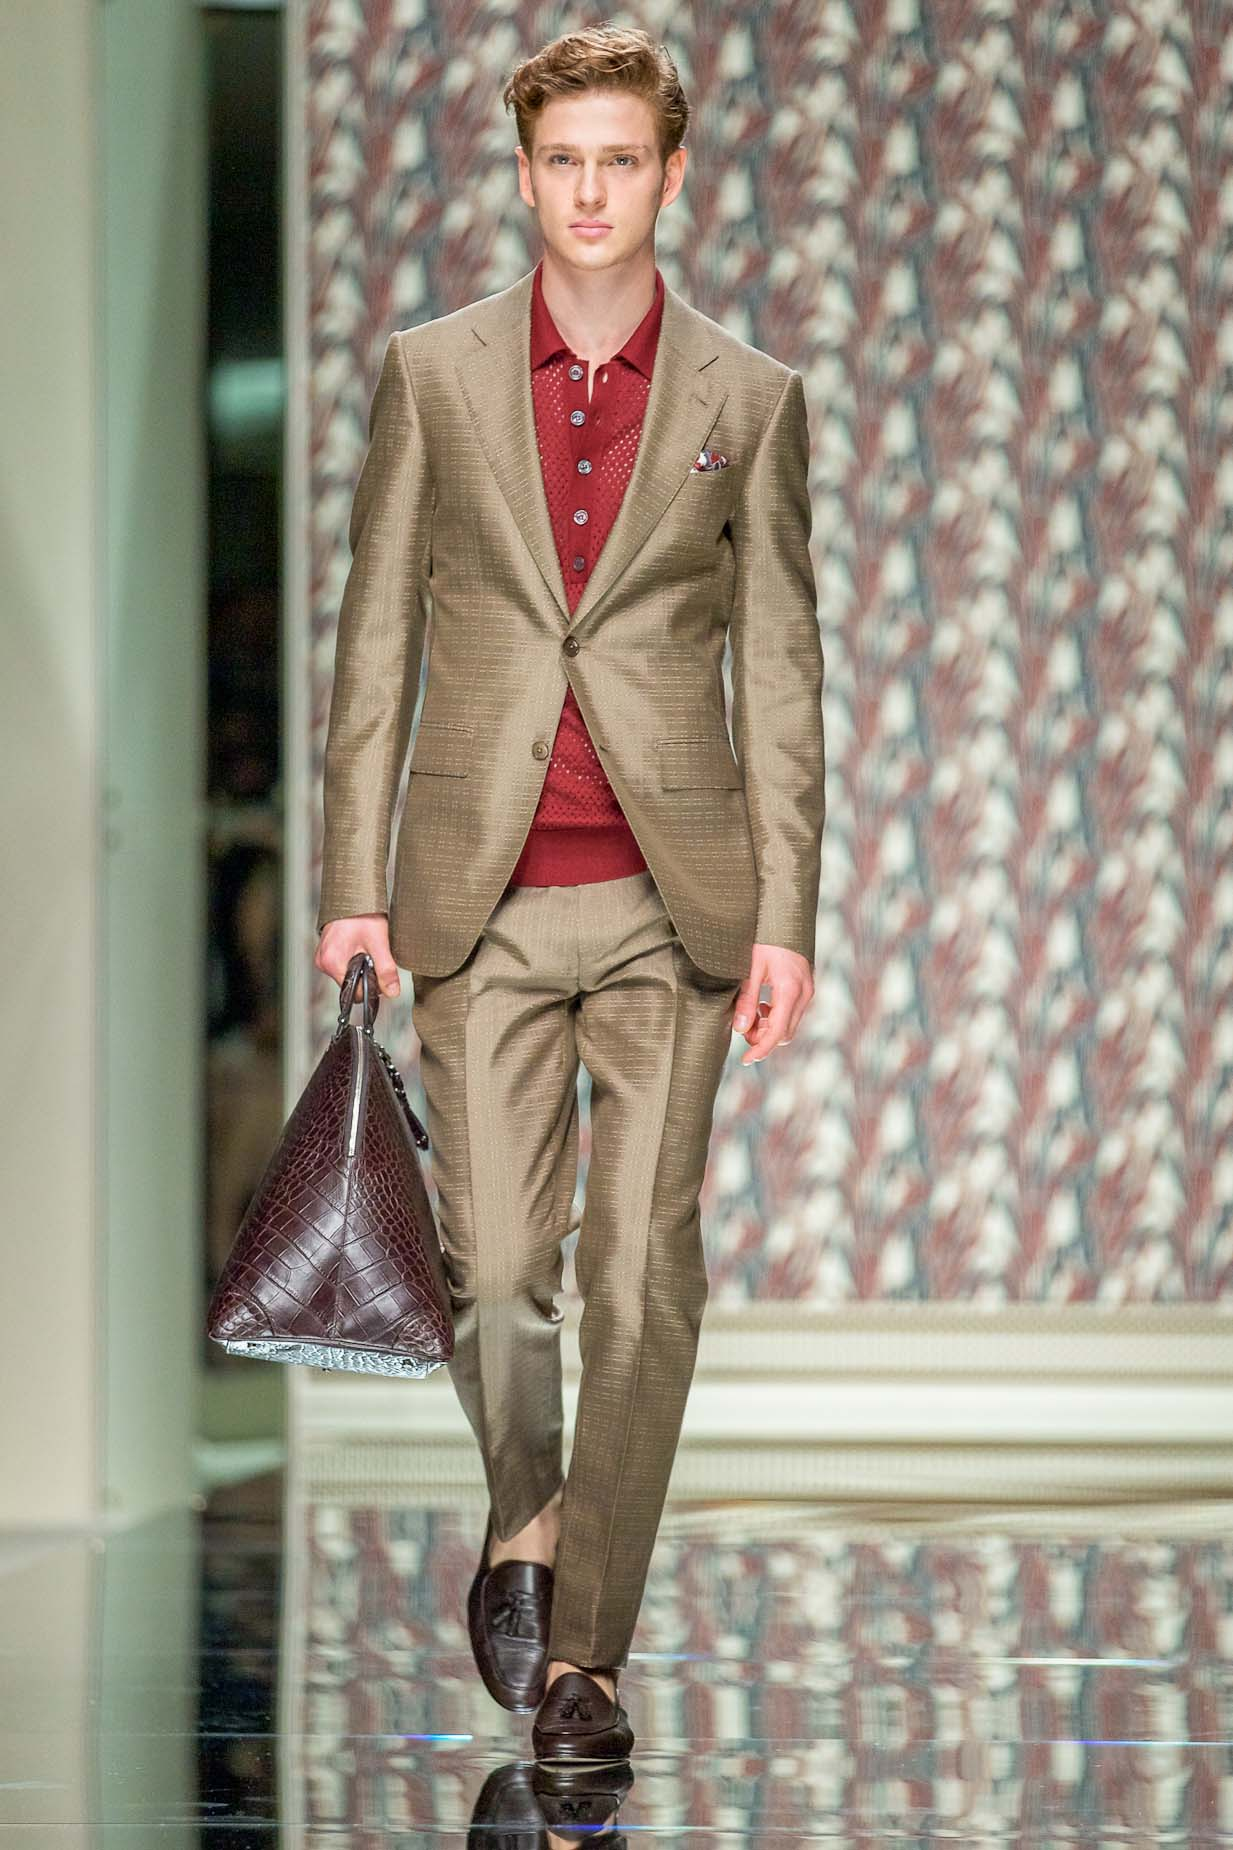 Ermenegildo Zegna Spring Summer 2013 Men's Collection Milano Fashion Week Fashion Show